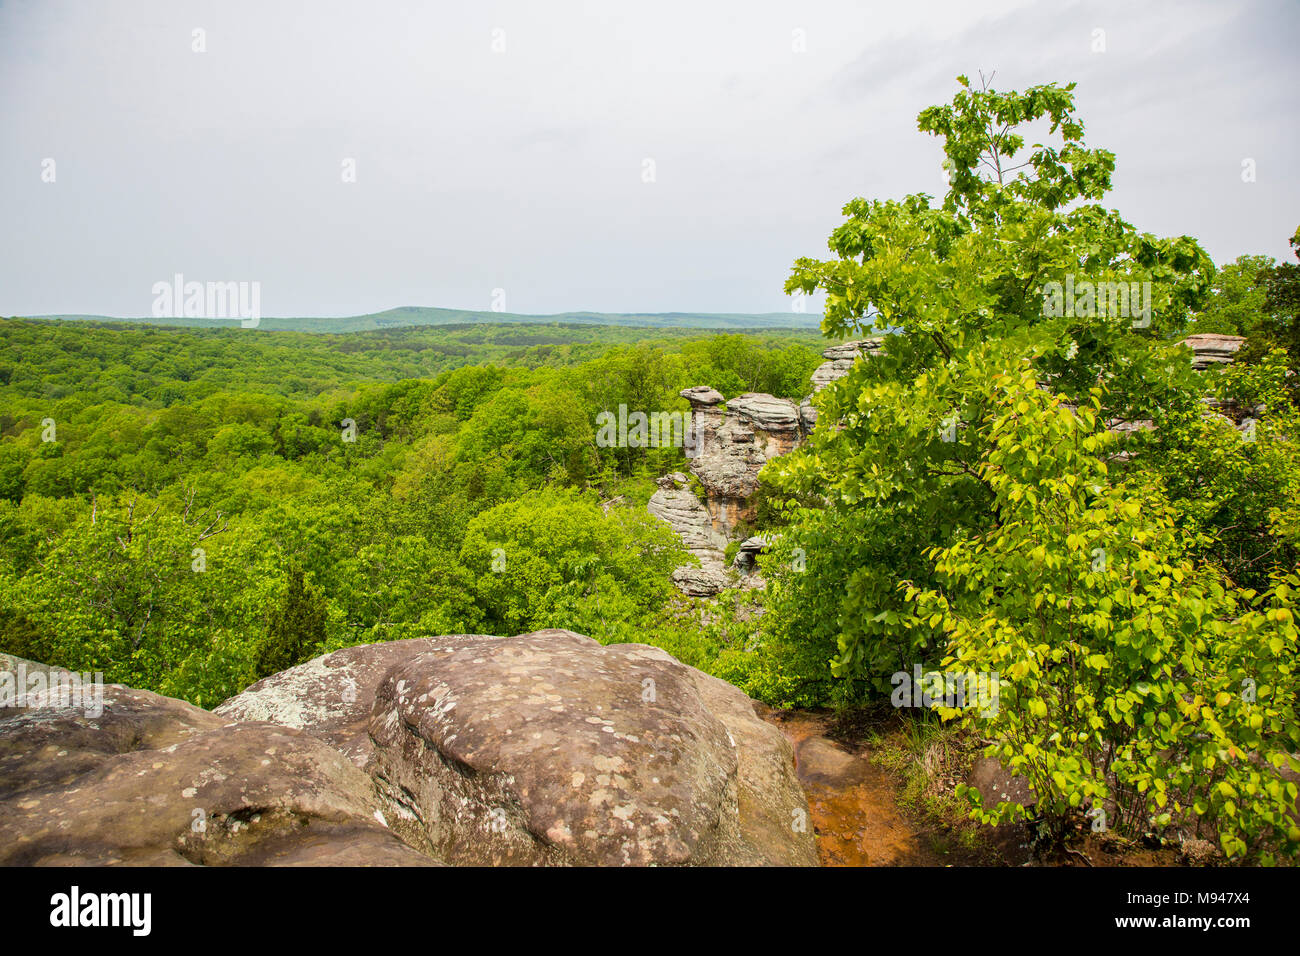 63895-14908 Camel Rock, Garden of the Gods Recreation Area Shawnee National Forest Saline Co. IL - Stock Image